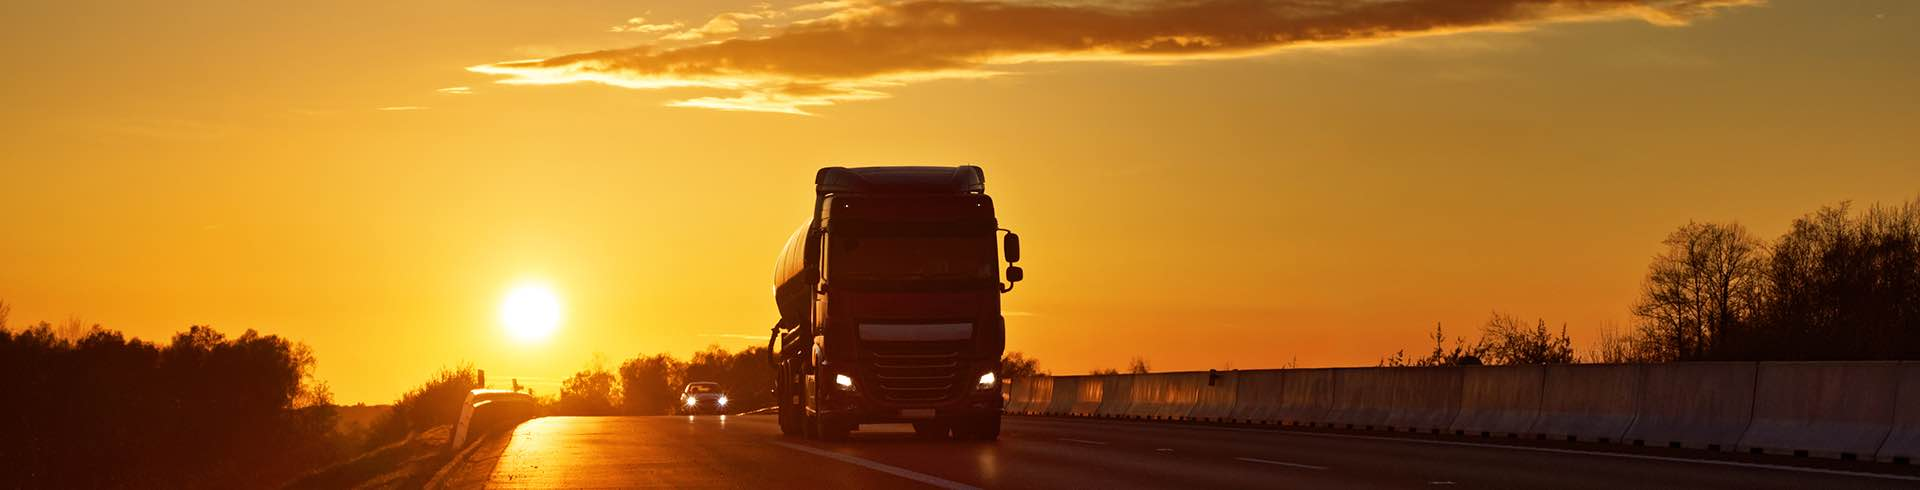 truck-driving-at-sunset